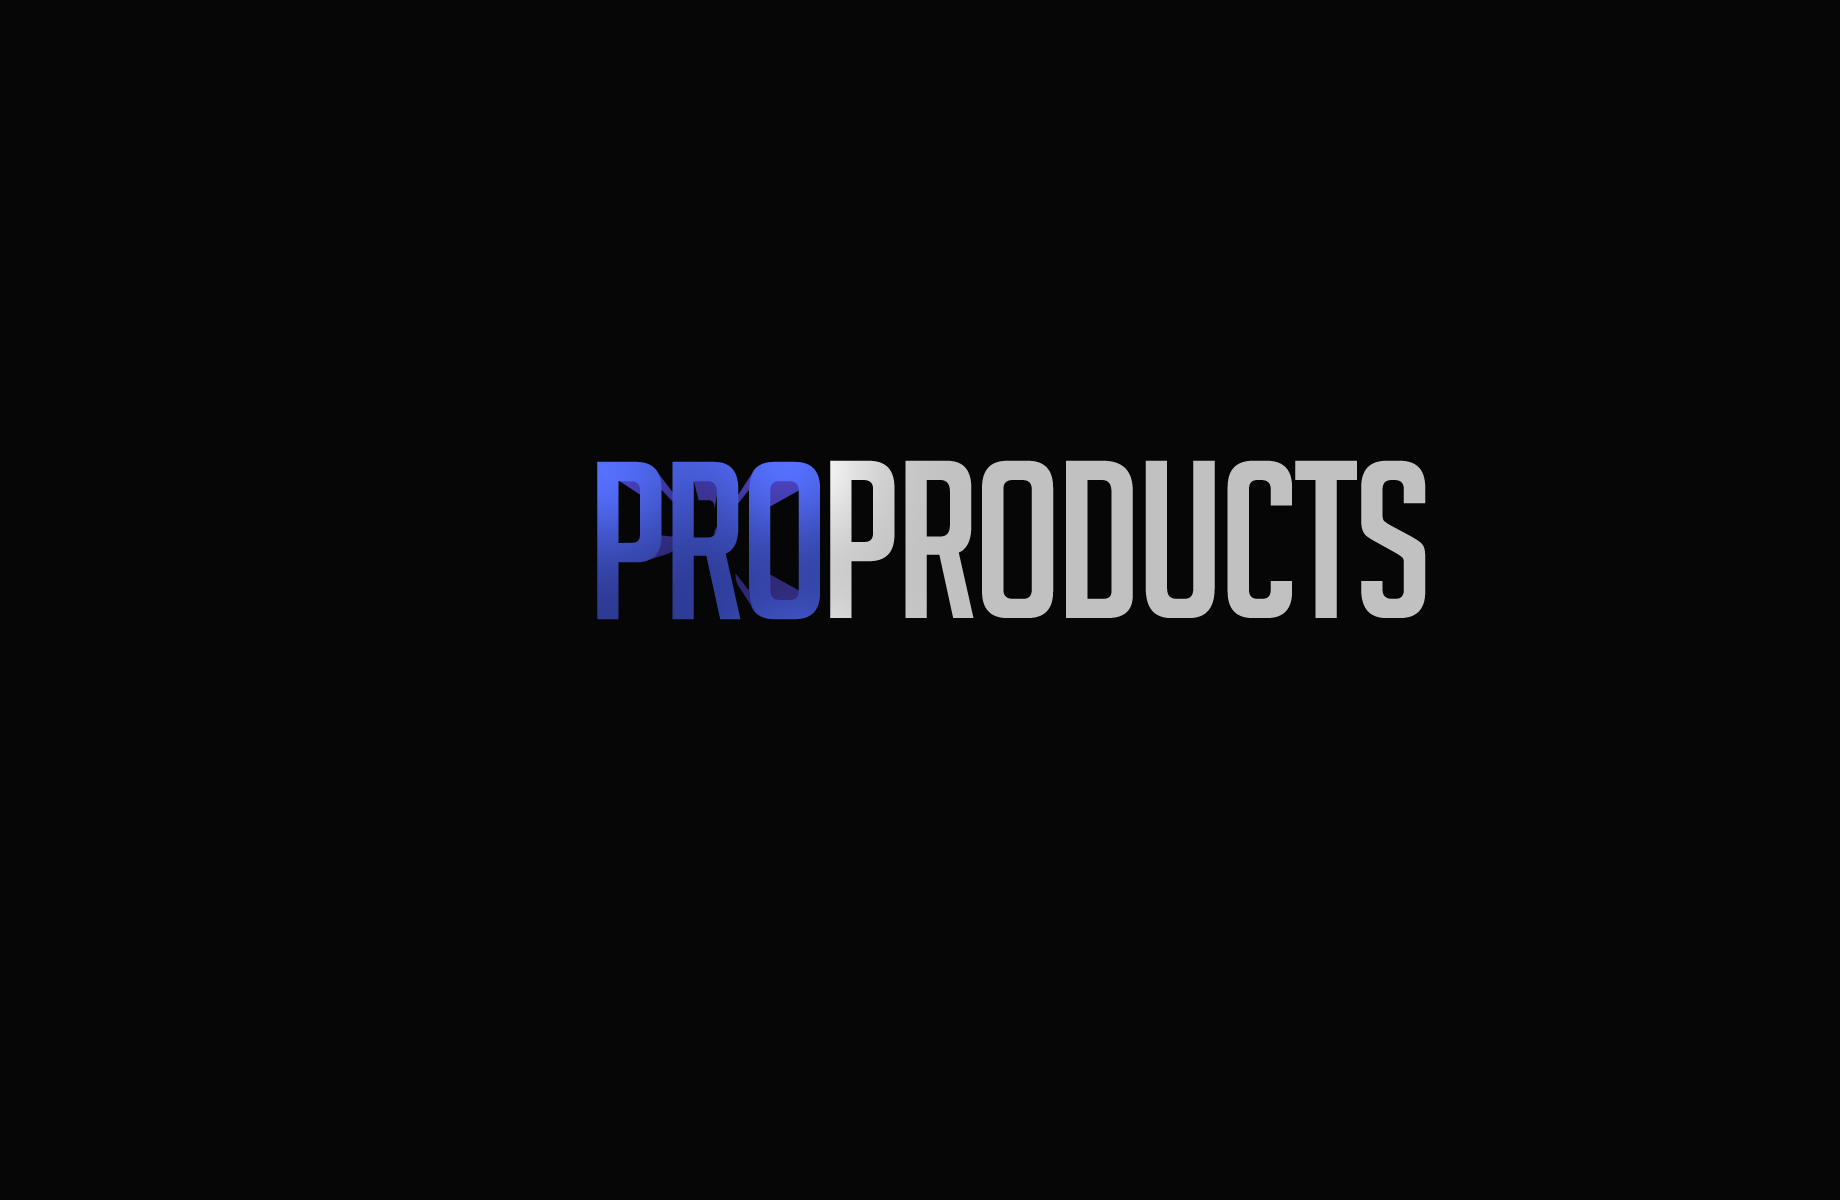 Logo Design by Jan Chua - Entry No. 6 in the Logo Design Contest Fun yet Professional Logo Design for ProProducts.